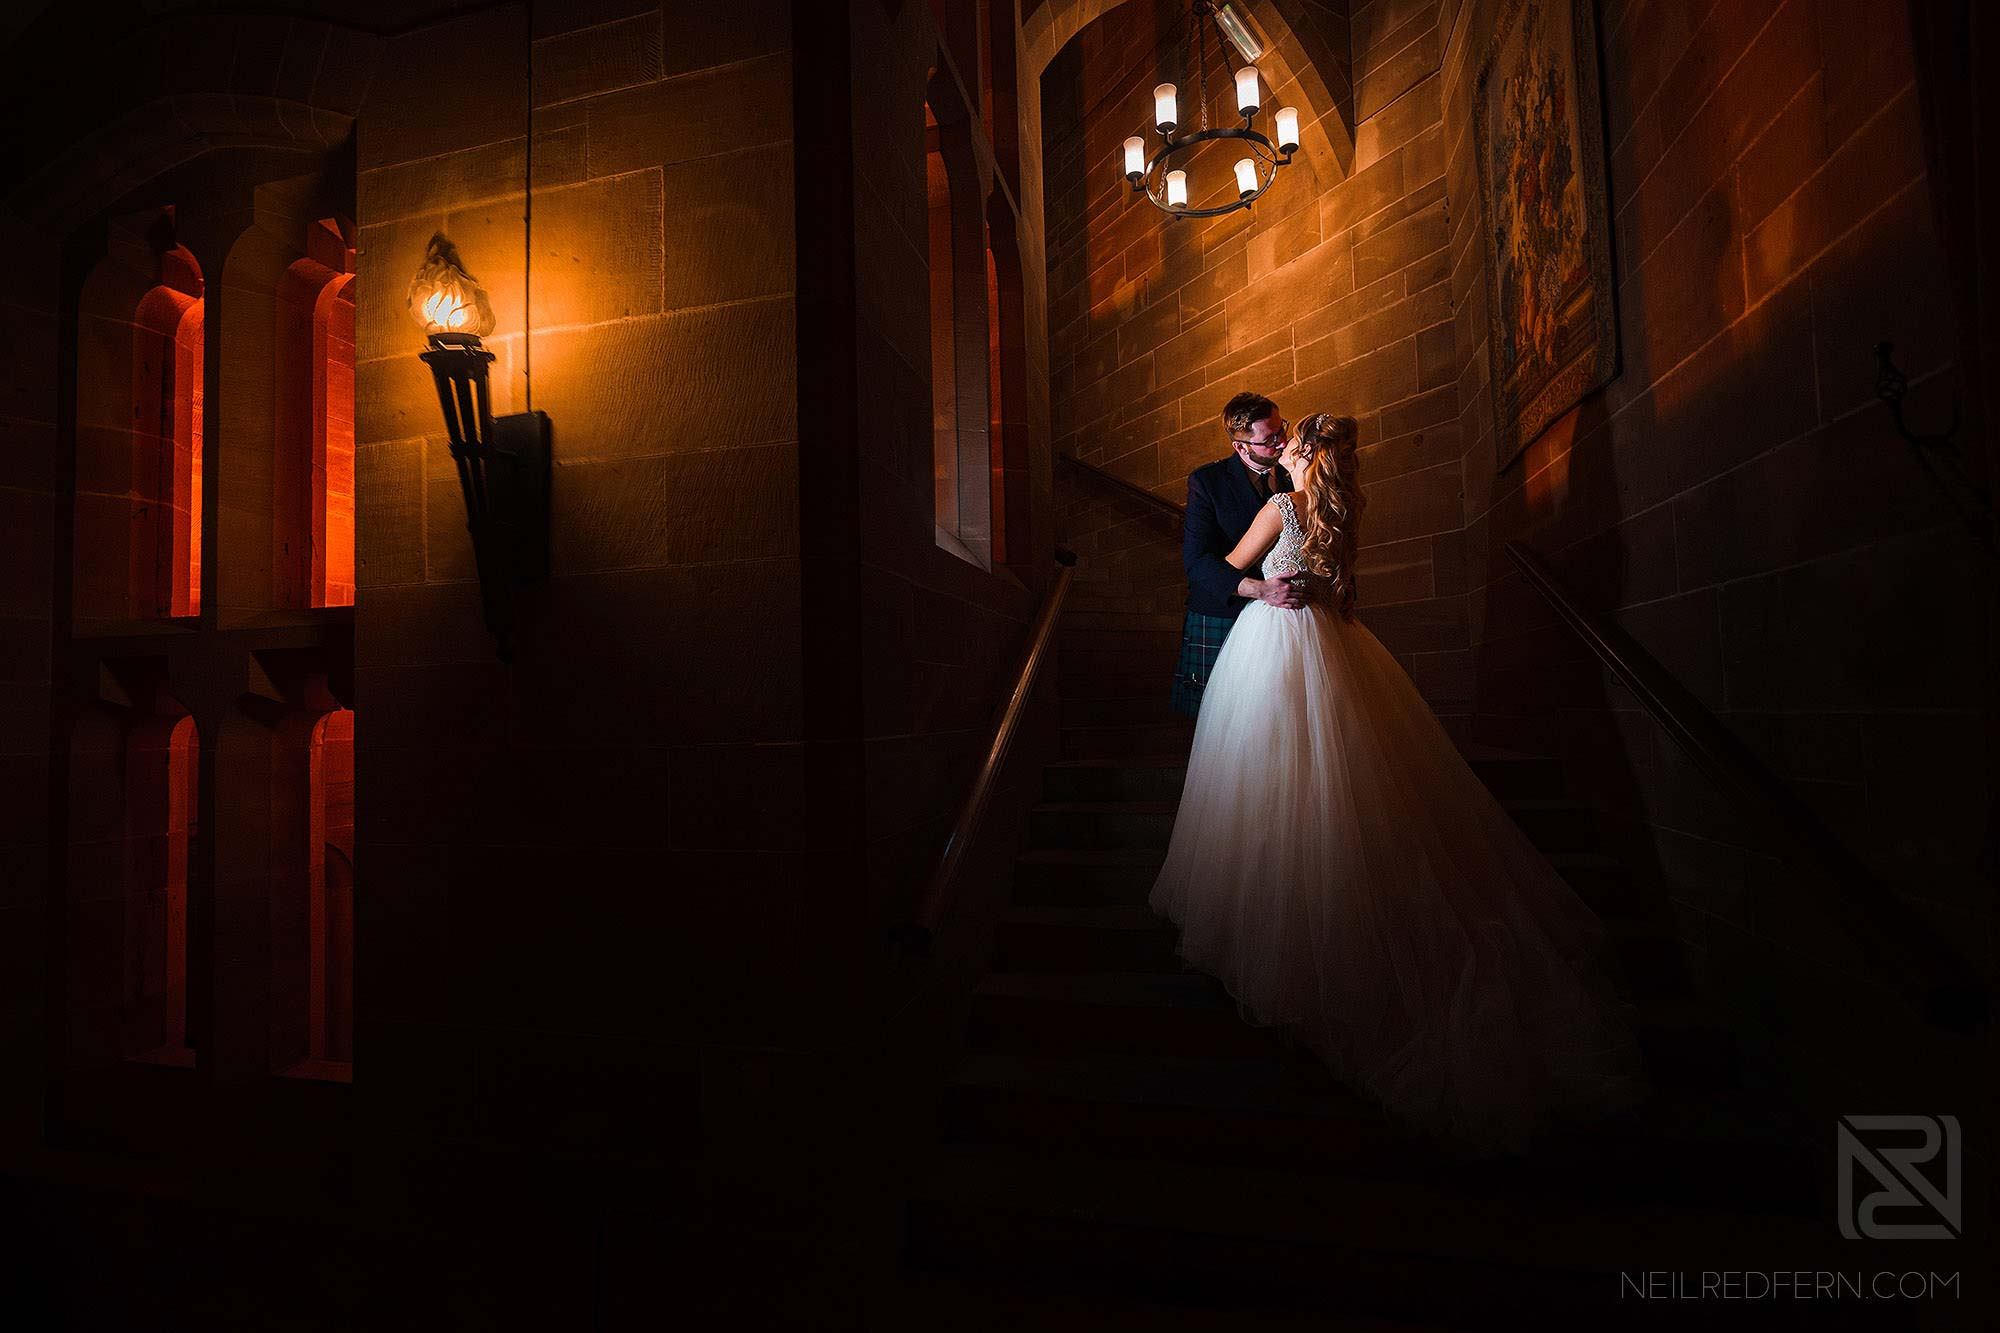 photograph of bride and groom on stairs in Peckforton Castle